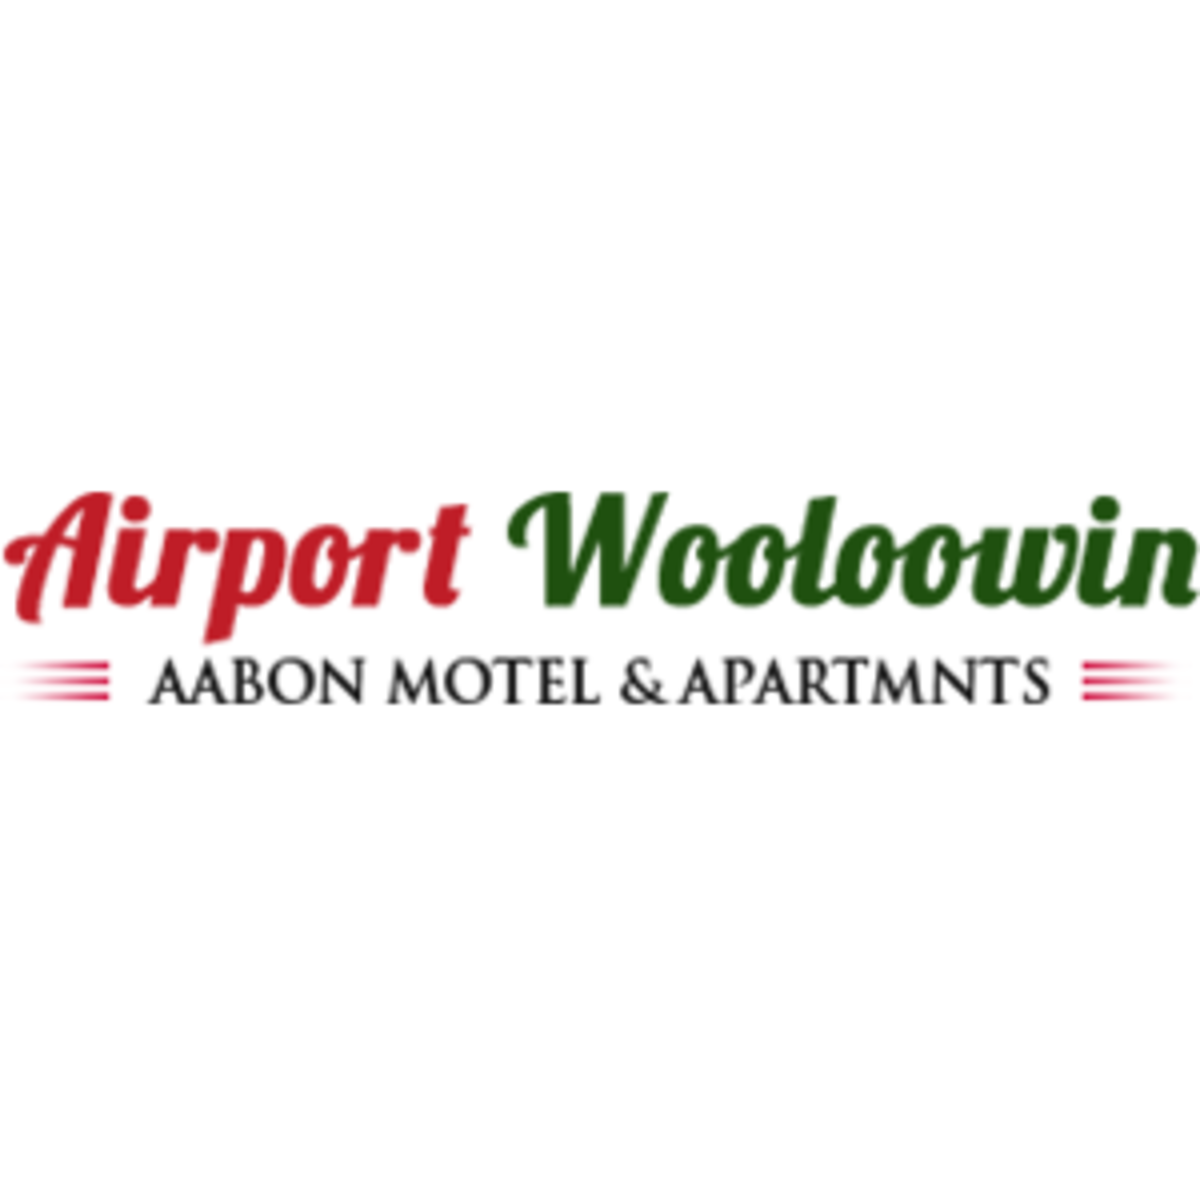 Headline for Airport Wooloowin Motel